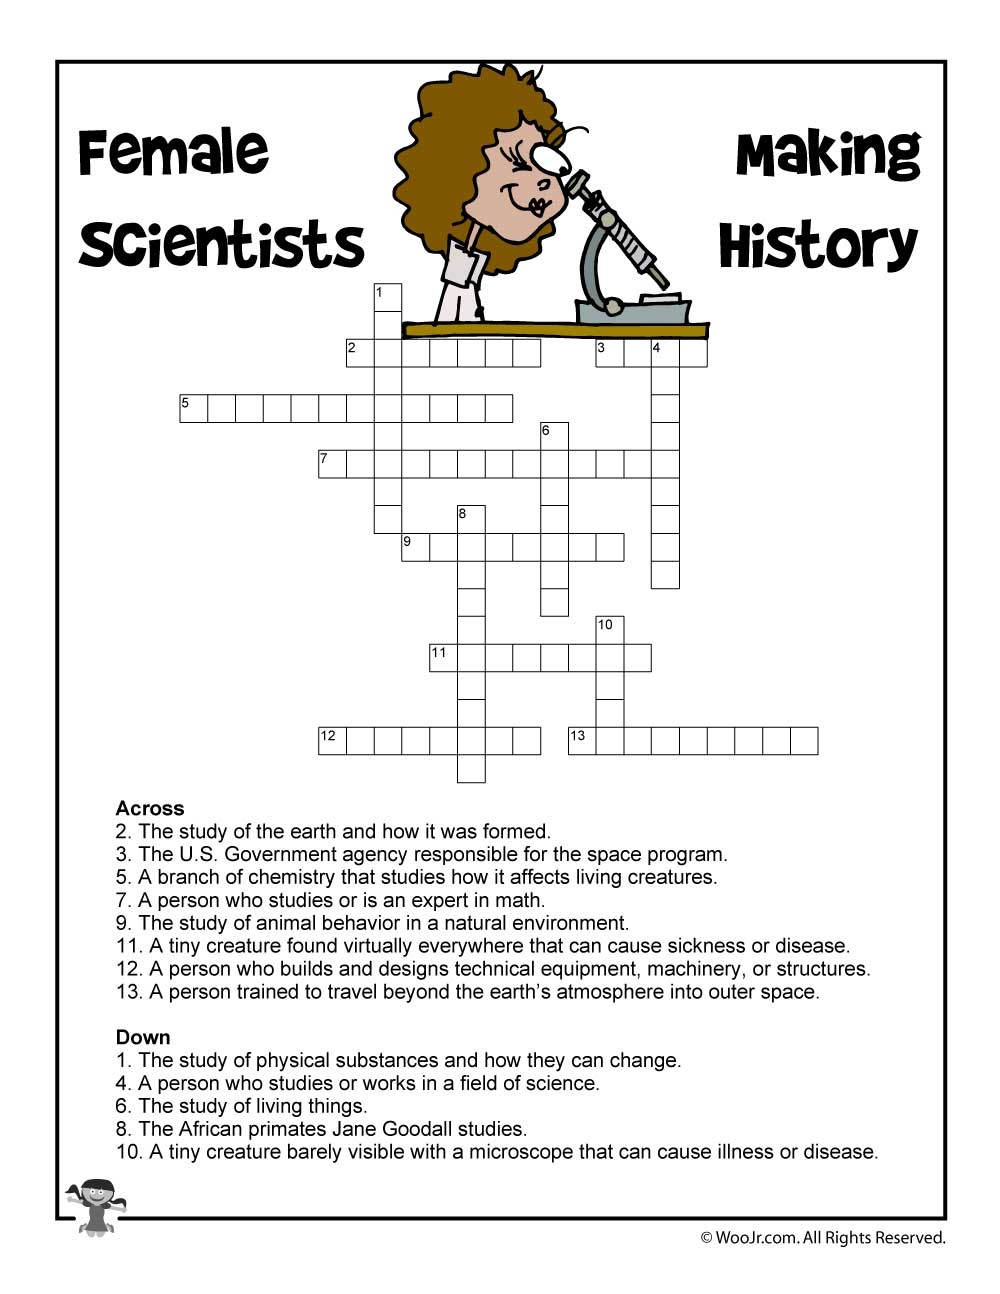 Female Scientists Crossword Puzzle | Woo! Jr. Kids Activities - Printable Crossword Puzzles Science